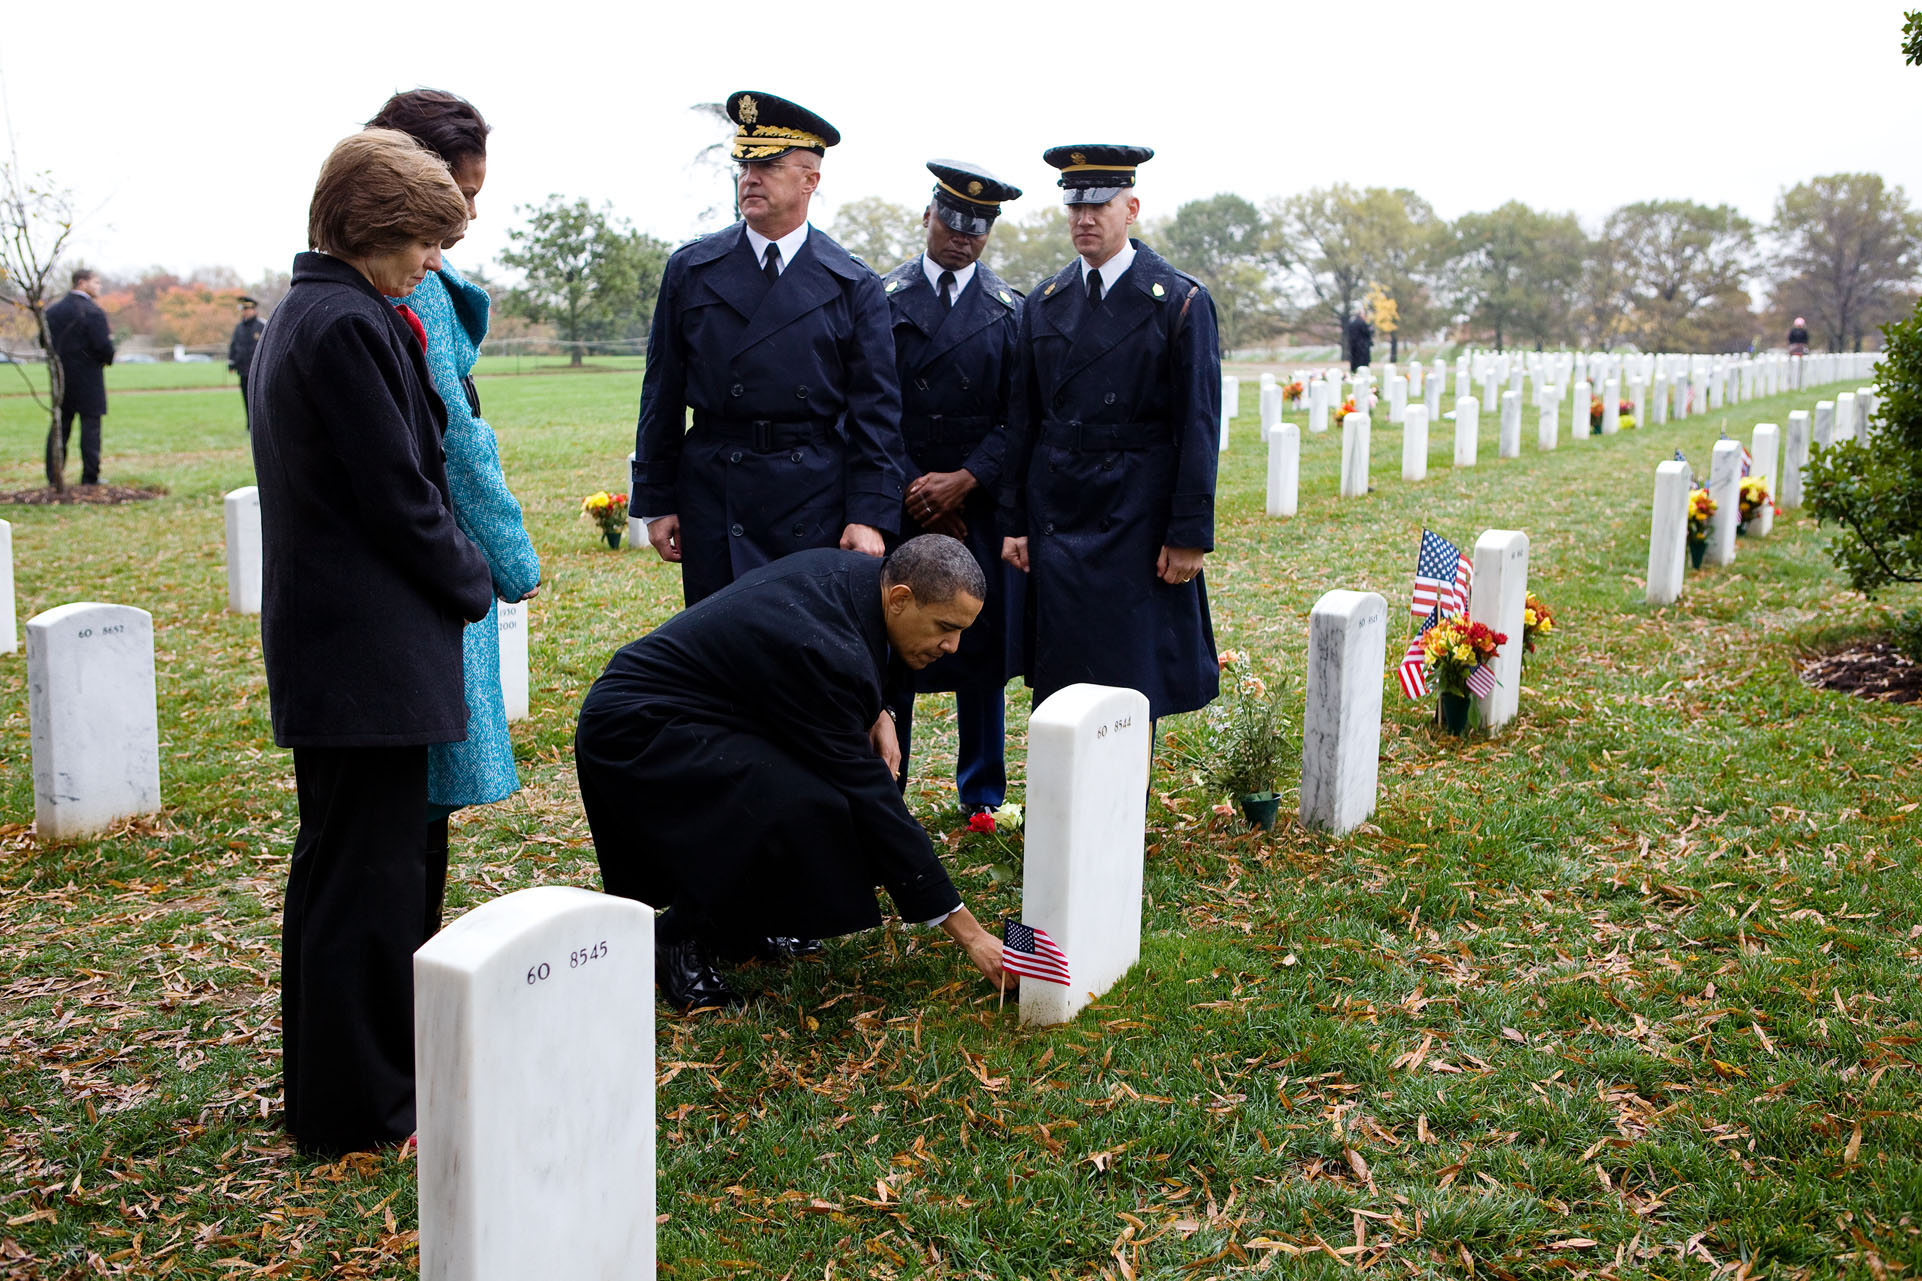 The President Pays Tribute to Those Who Made the Ultimate Sacrifice for their Country